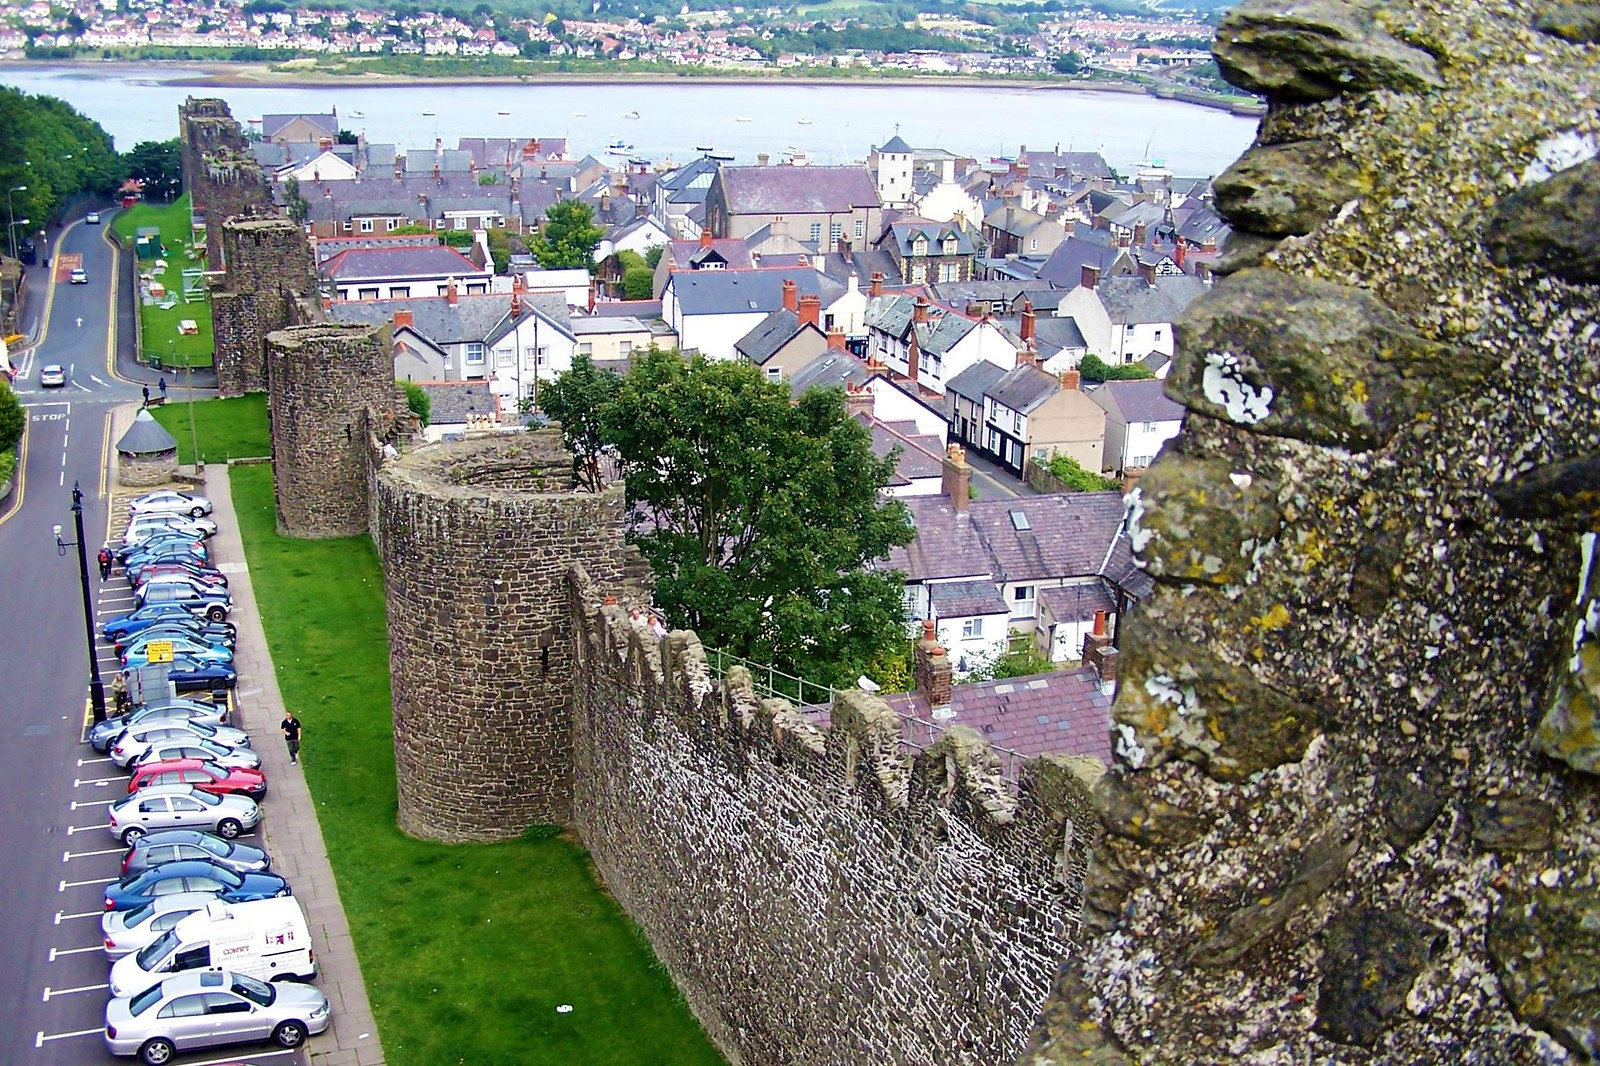 Medieval walls surrounding the town of Conwy, Wales. Credit One lucky guy